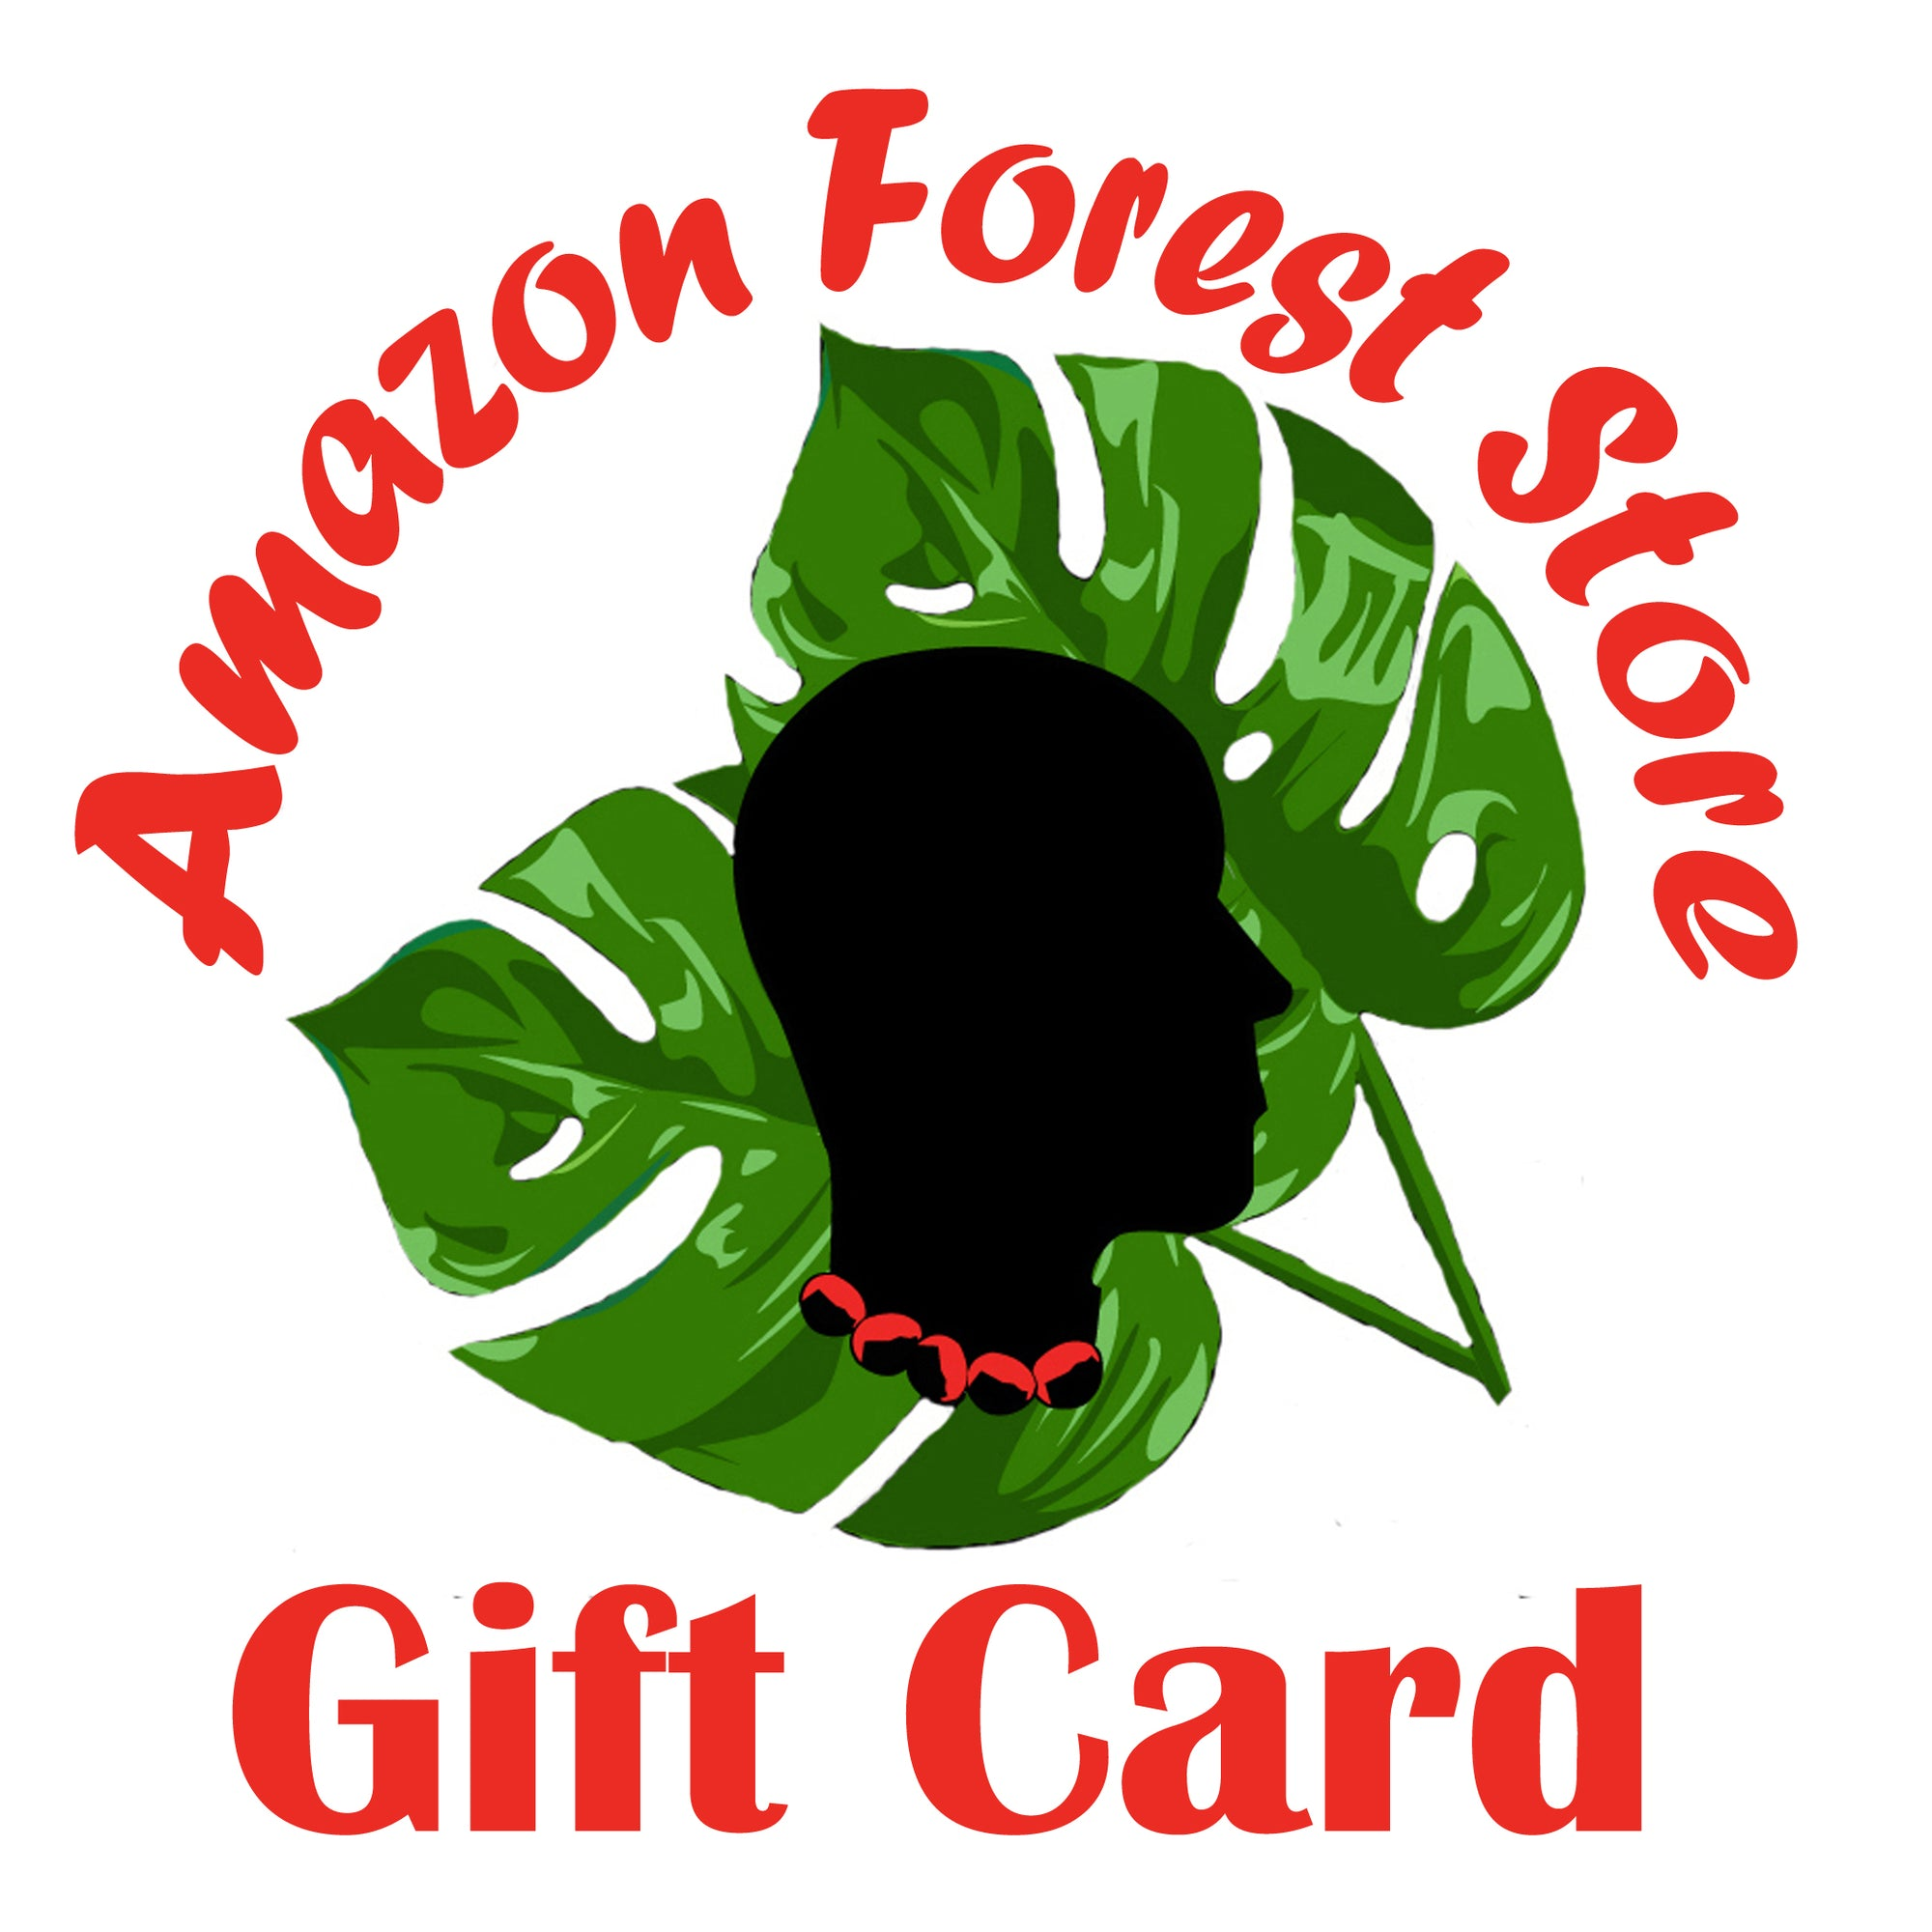 Gift Card for Hand-Made Fair-Trade Crafts from the Peruvian Amazon